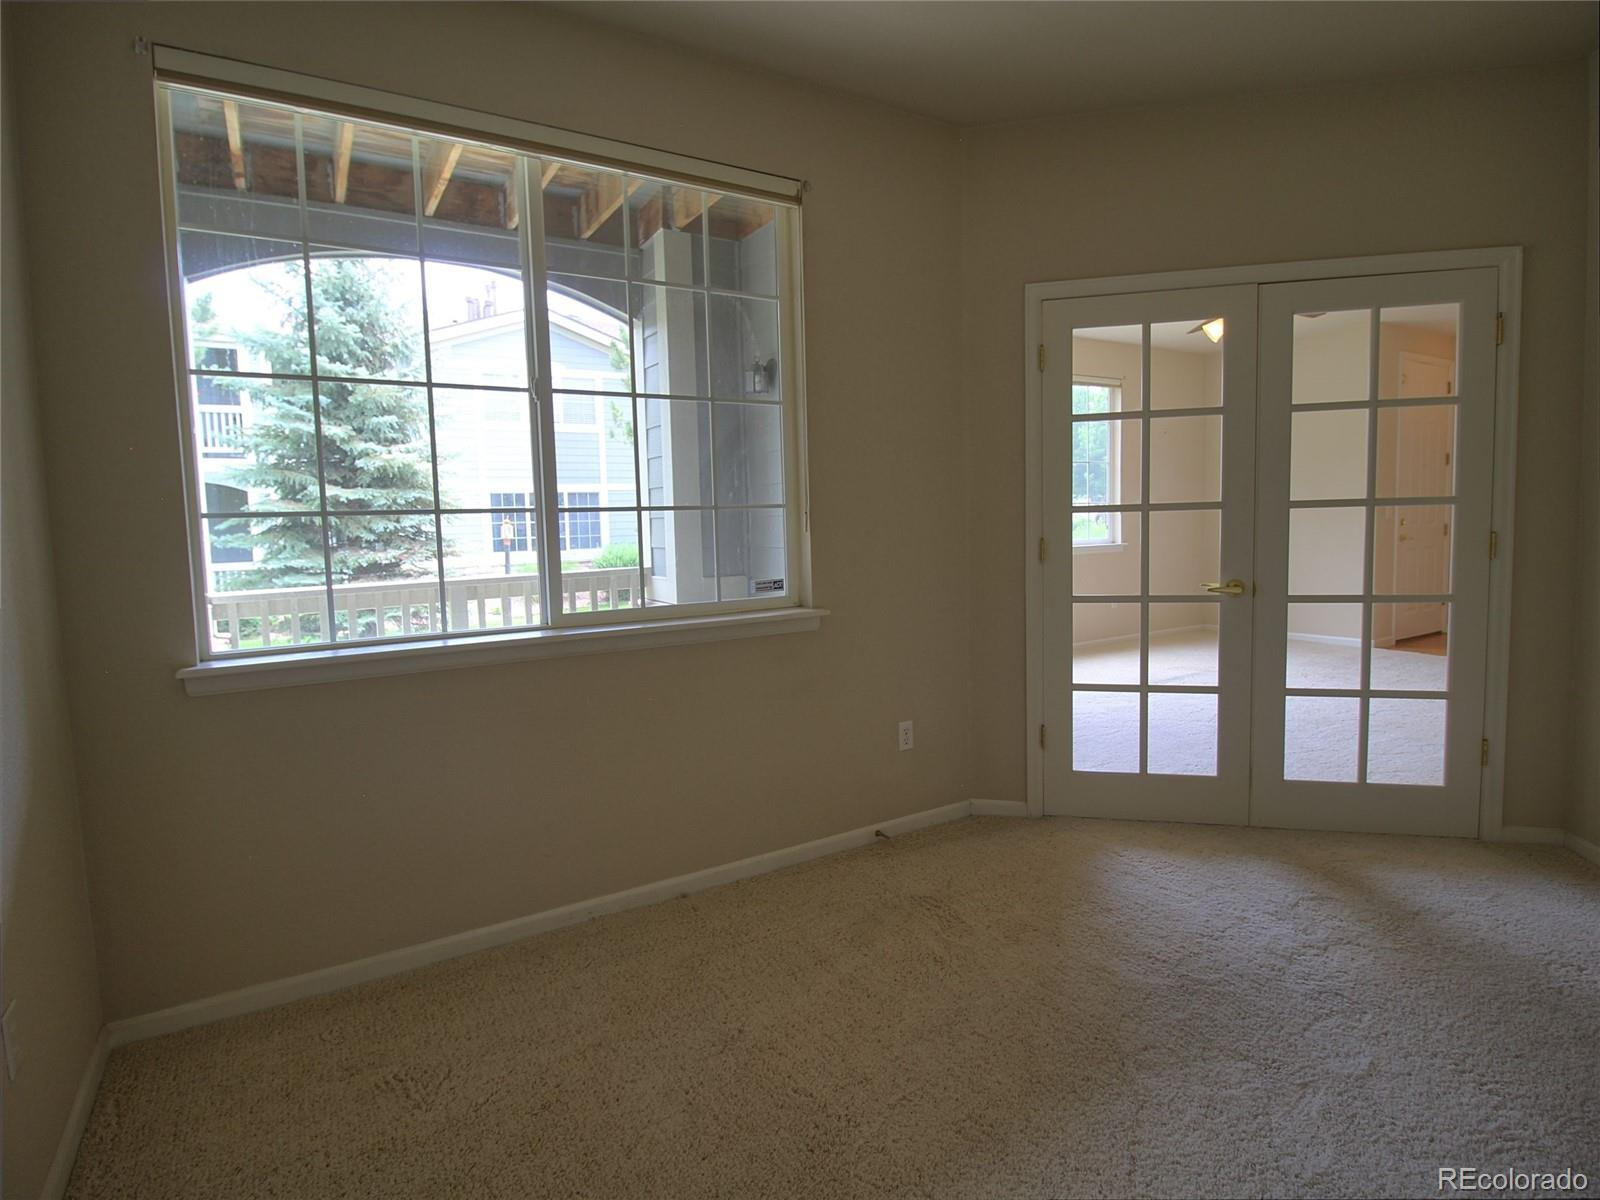 MLS# 2589800 - 10 - 1404 Whitehall Drive #17G, Longmont, CO 80504